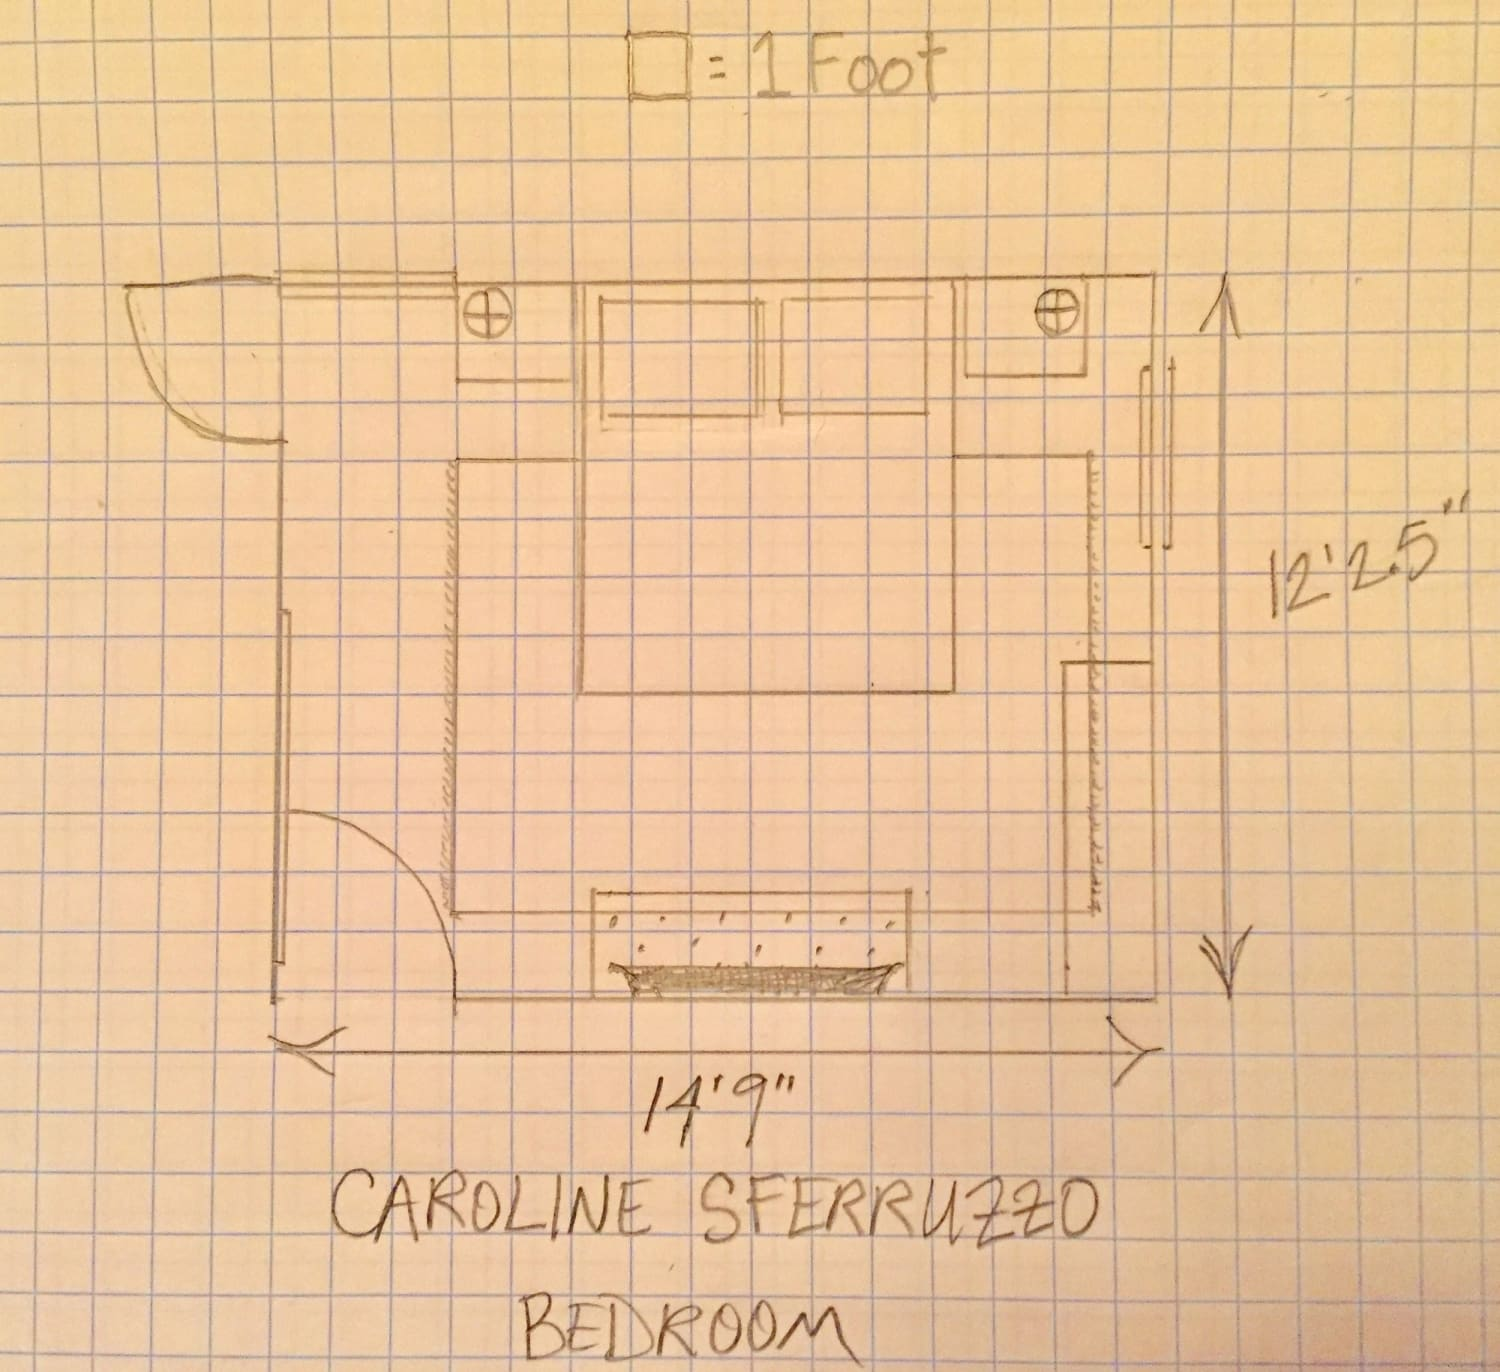 Bedroom Layout Created For Caroline